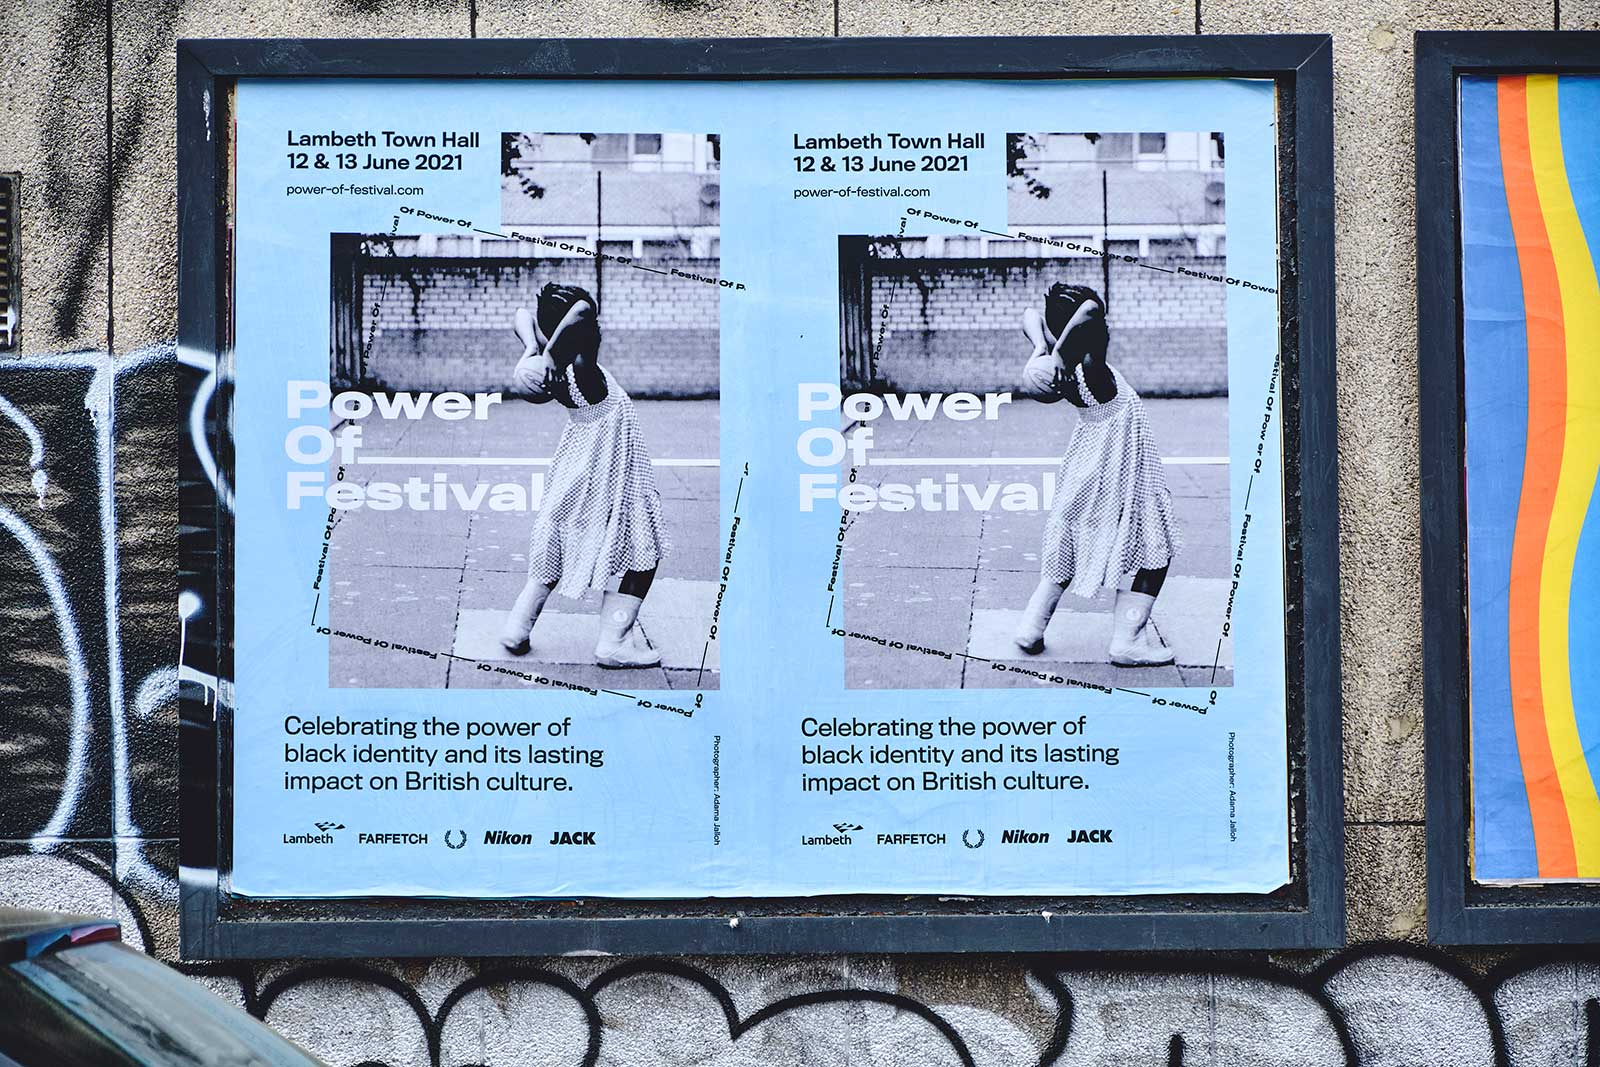 Celebrating the influence of Black identity on British culture with Power Of Festival